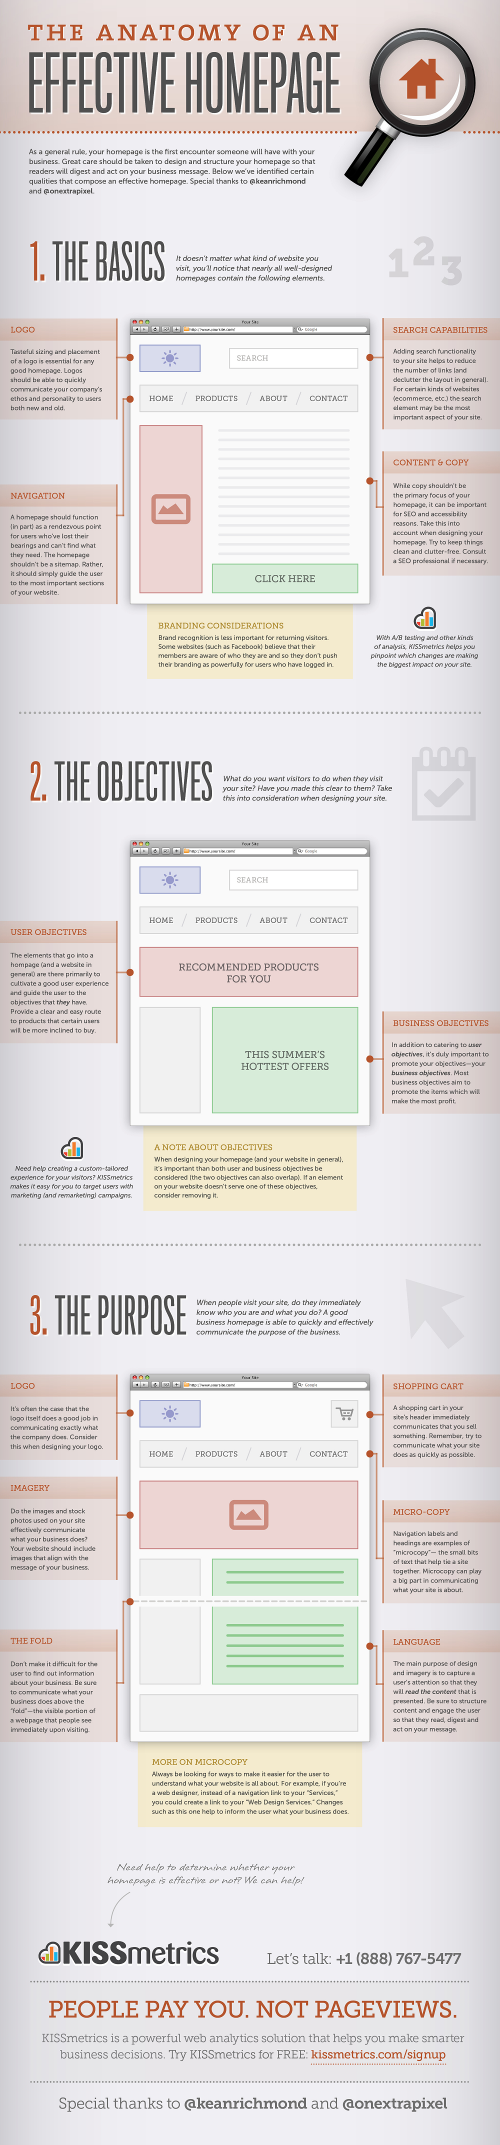 The Anatomy of an Effective Home Page